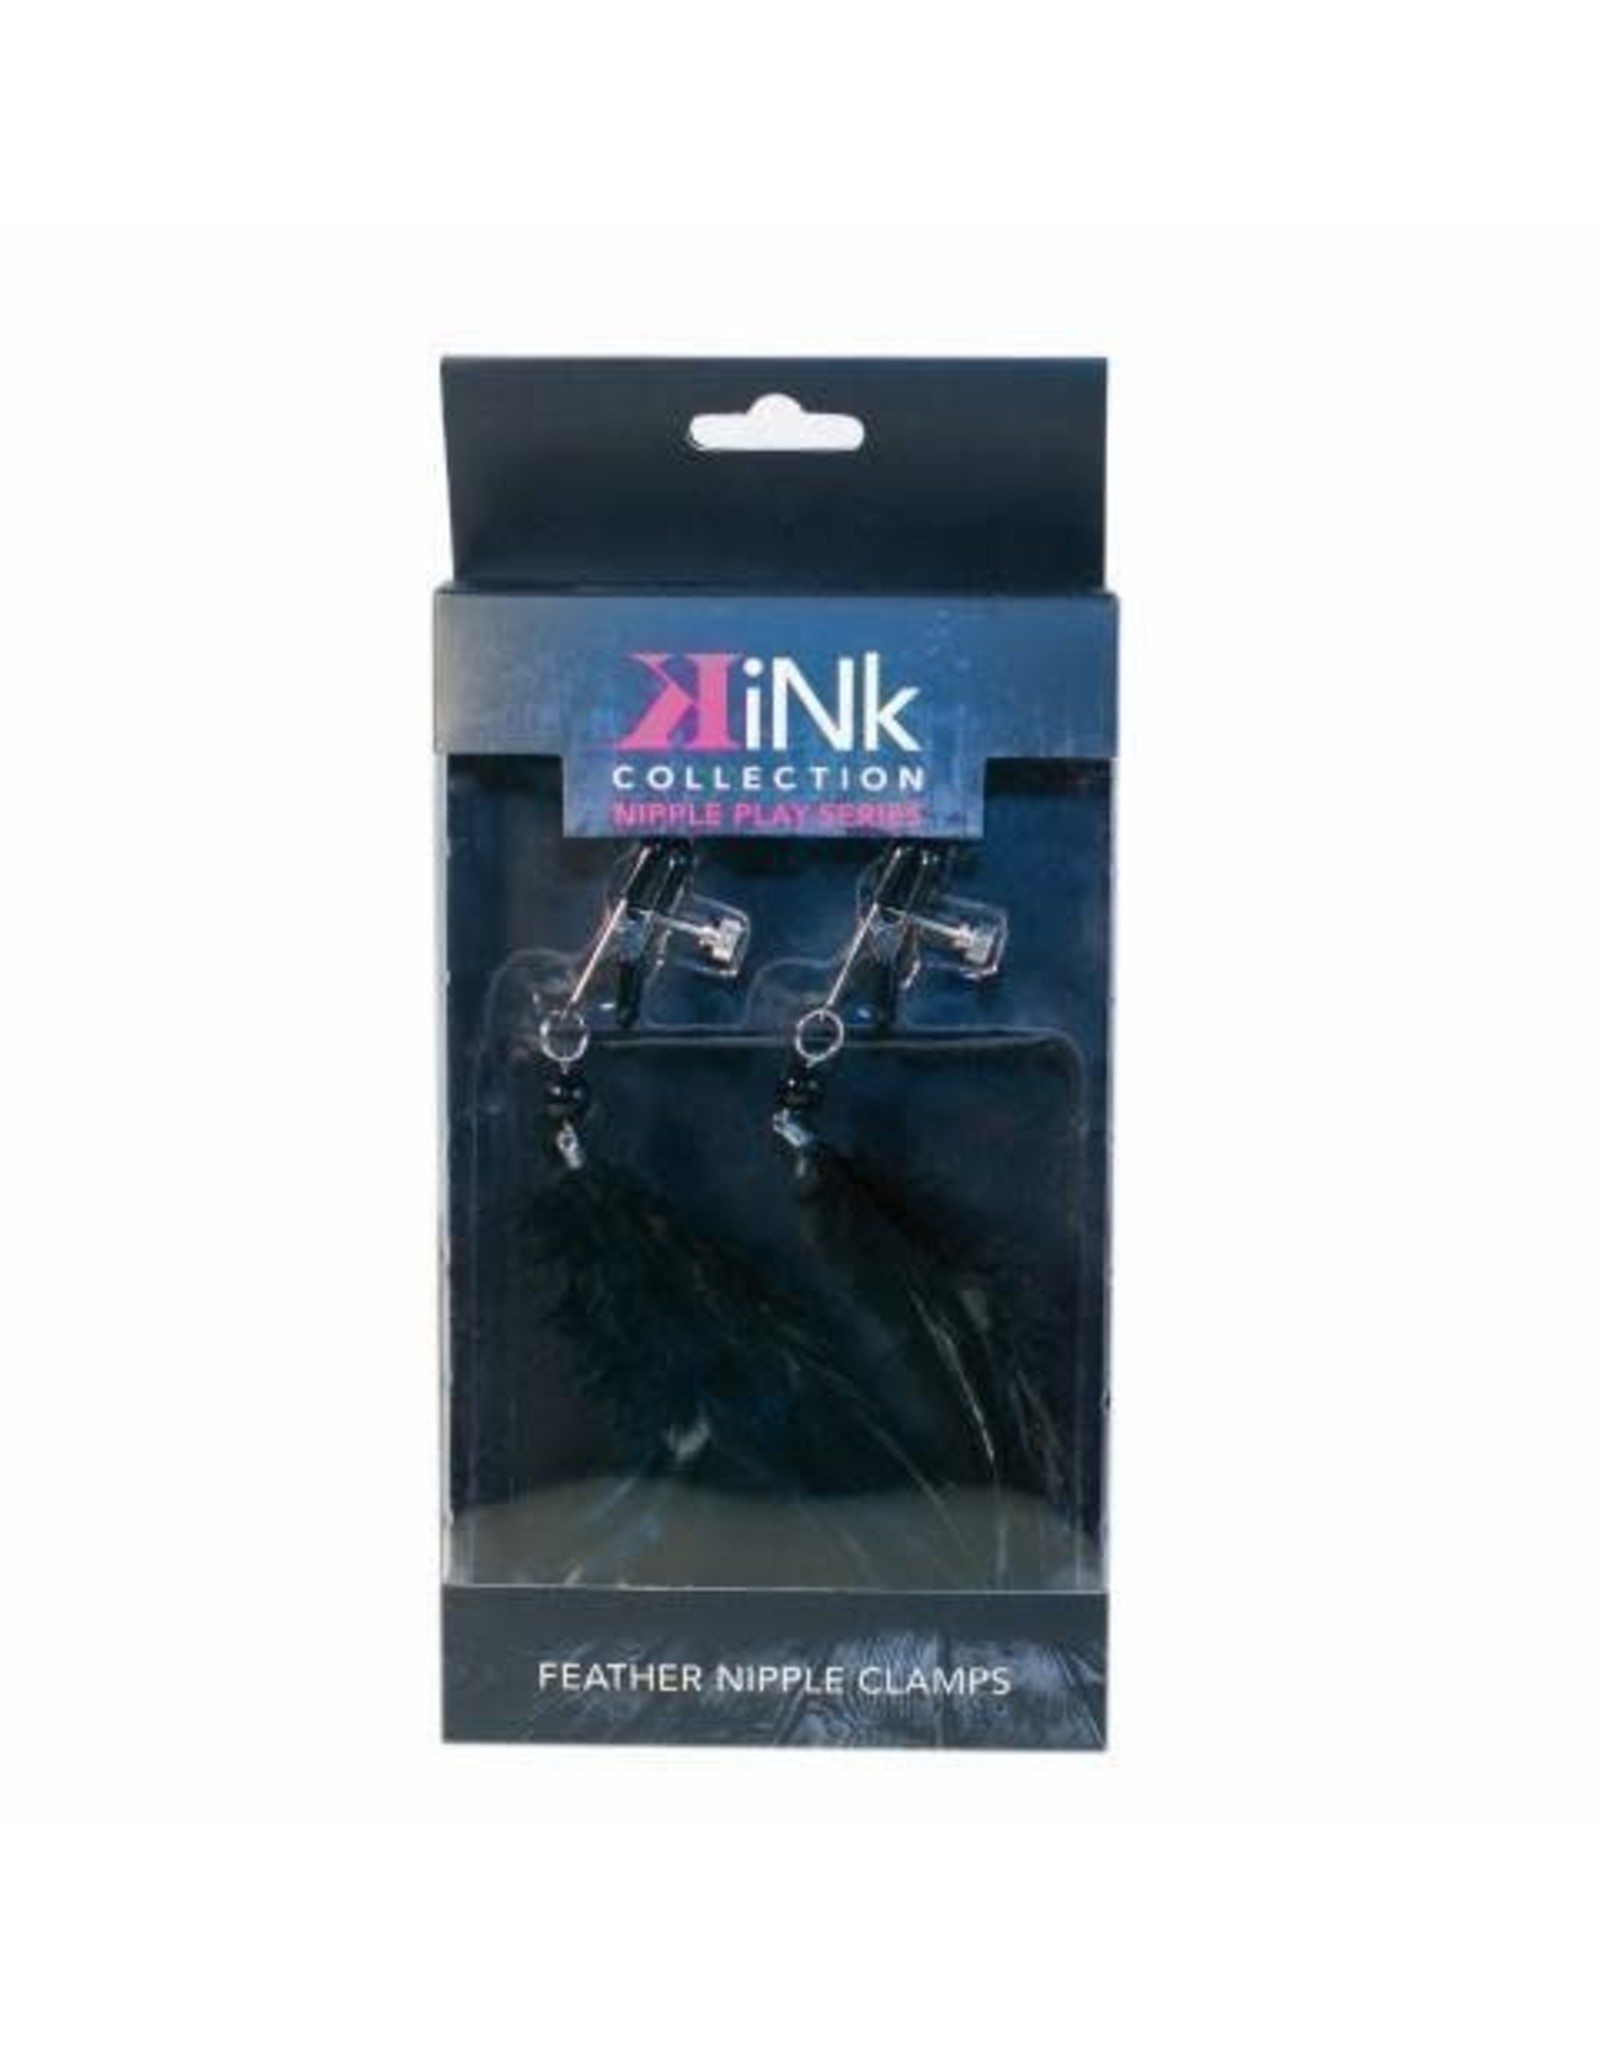 TW Trades Kink - Feather Nipple Clamps in Black